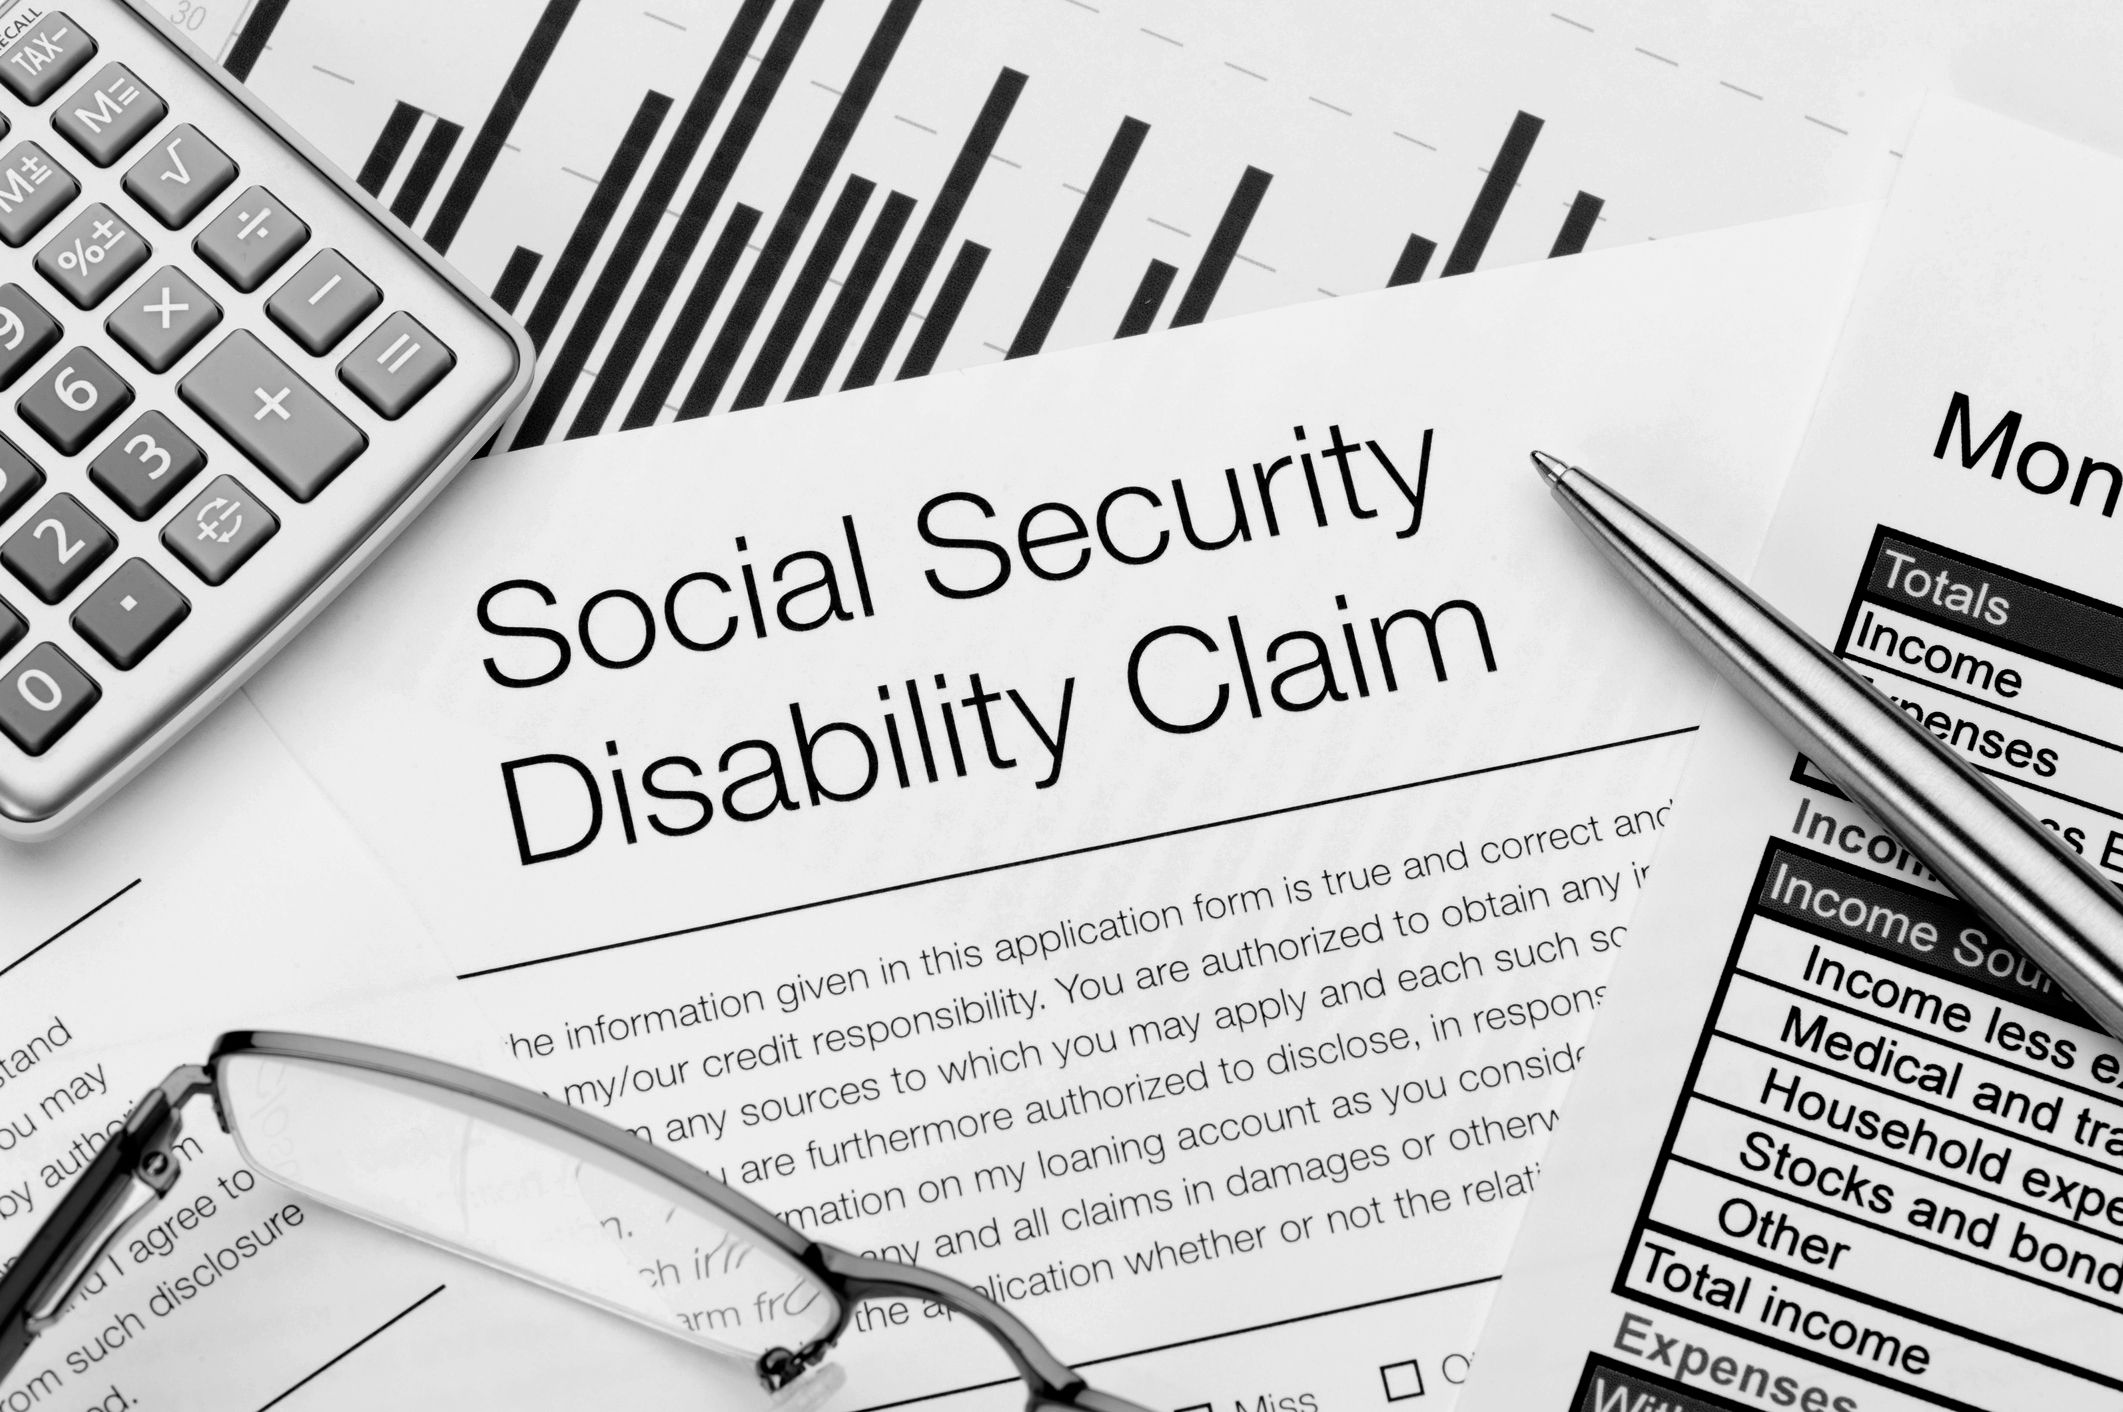 Social Security Disability Insurance (SSDI) claim